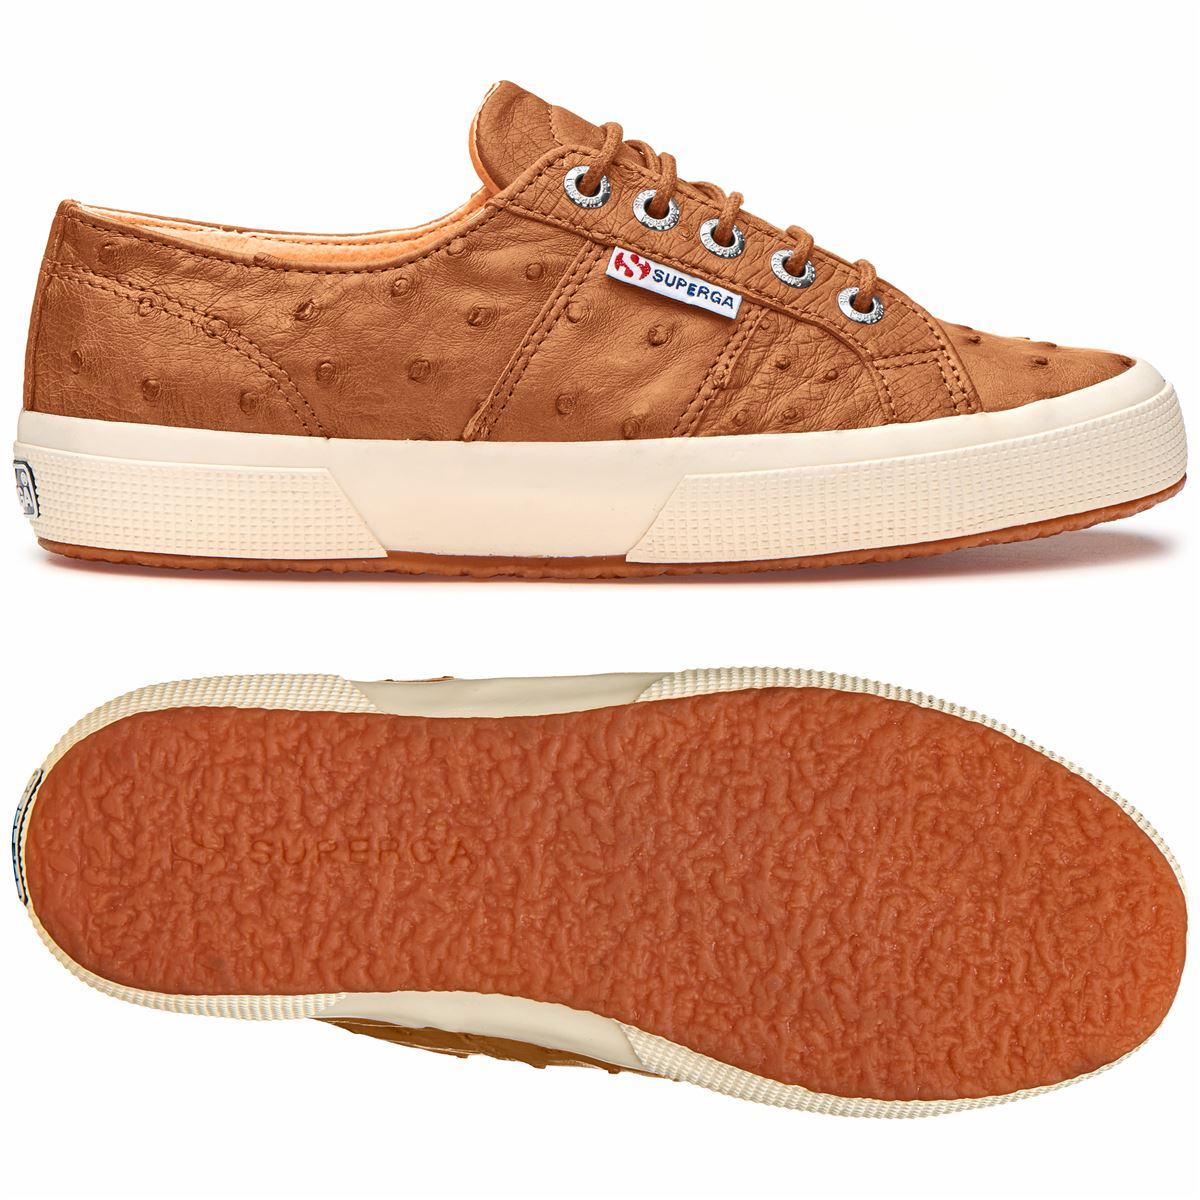 d5f7b8b969f3 Online sale of the Superga italian men and women shoes ESTREME 2750-OSTRICH.